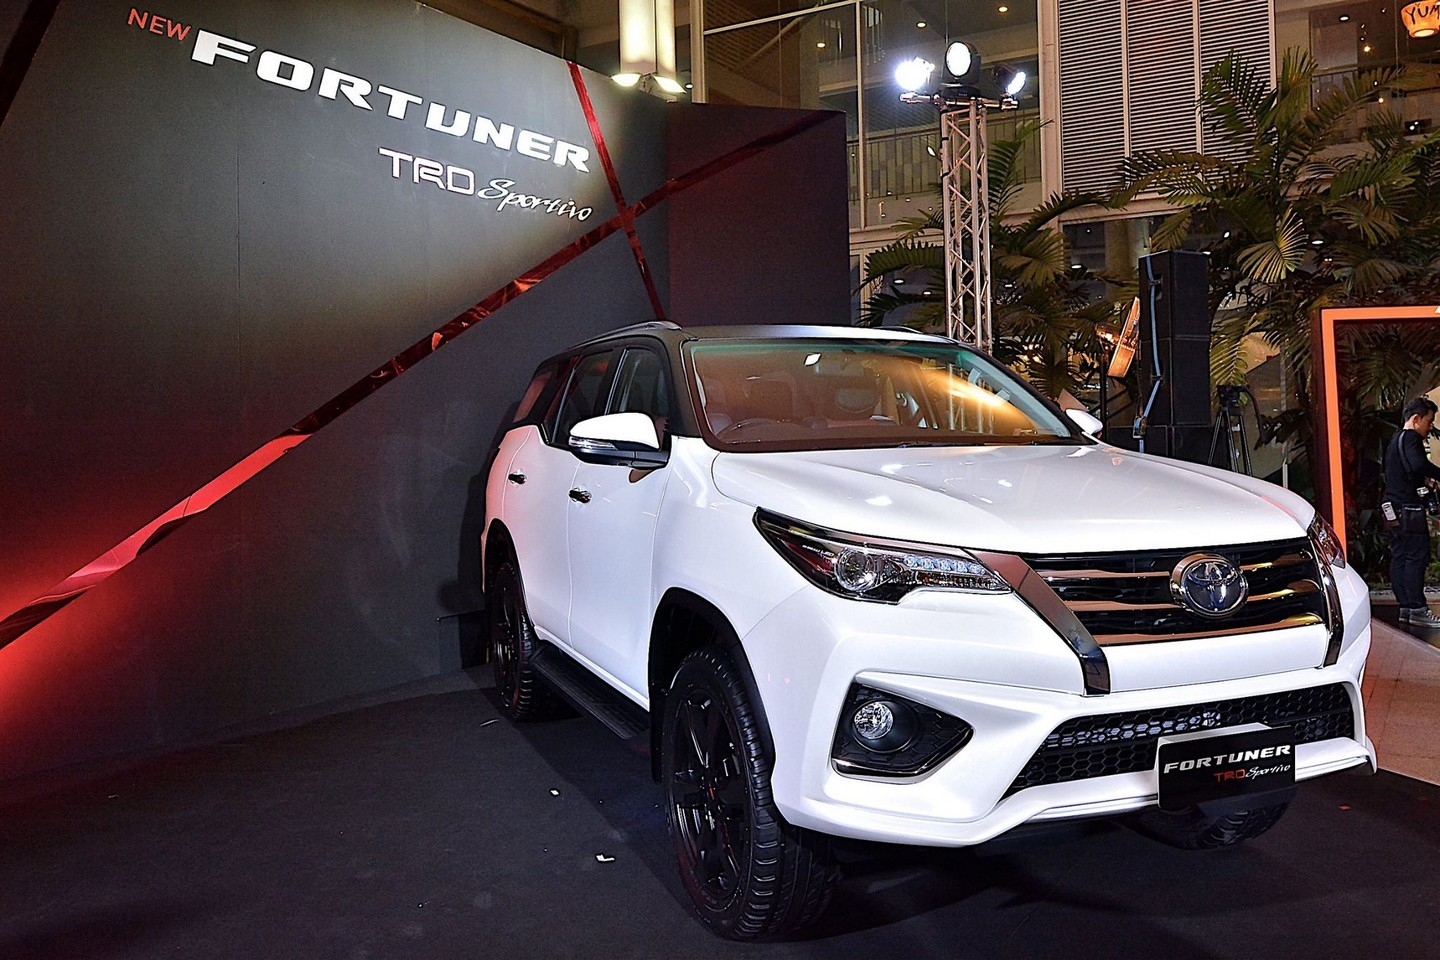 New Toyota Fortuner TRD Sportivo Is a Hilux SUV with Attitude ...